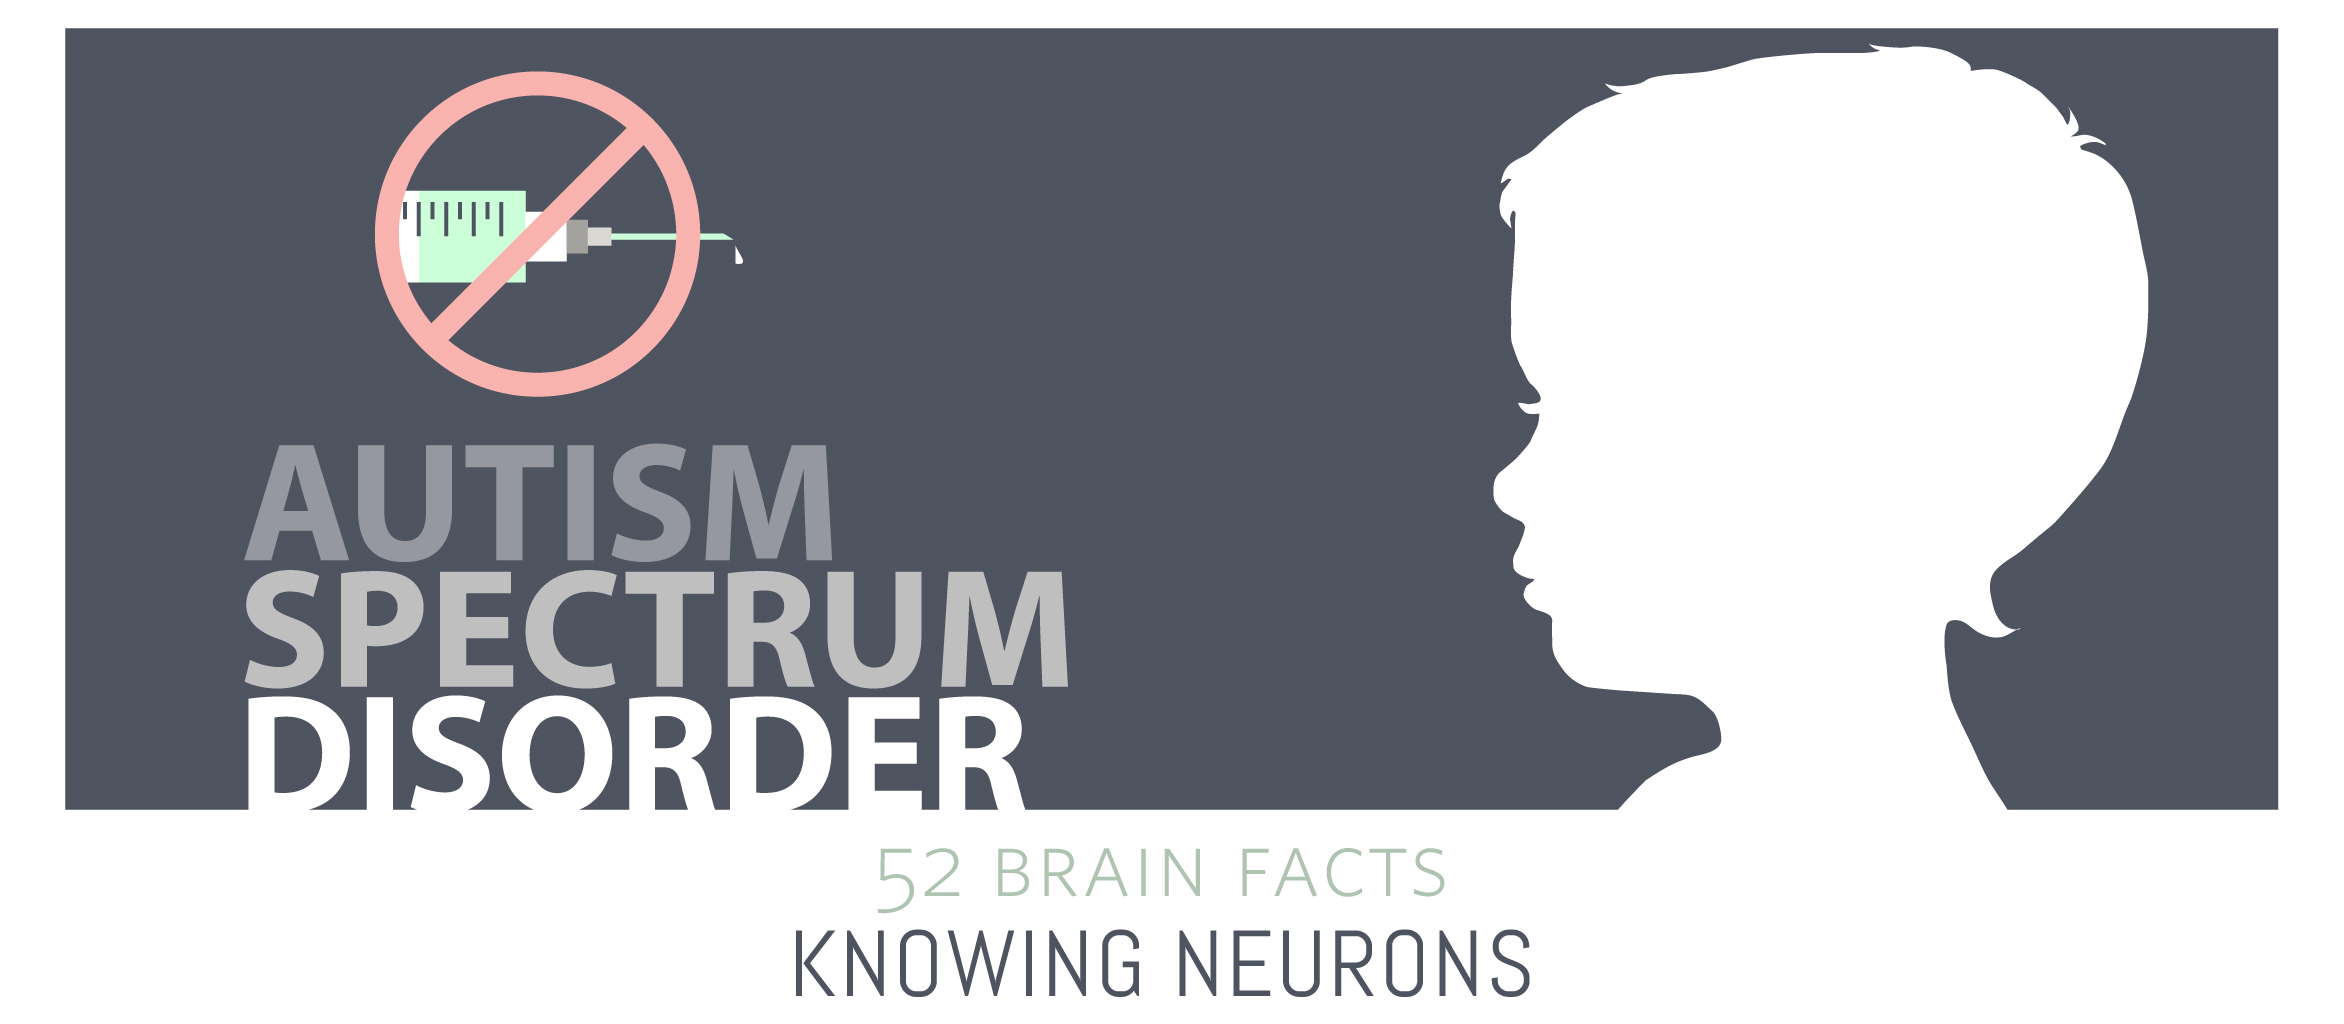 Myth or Fact? Vaccines cause autism.